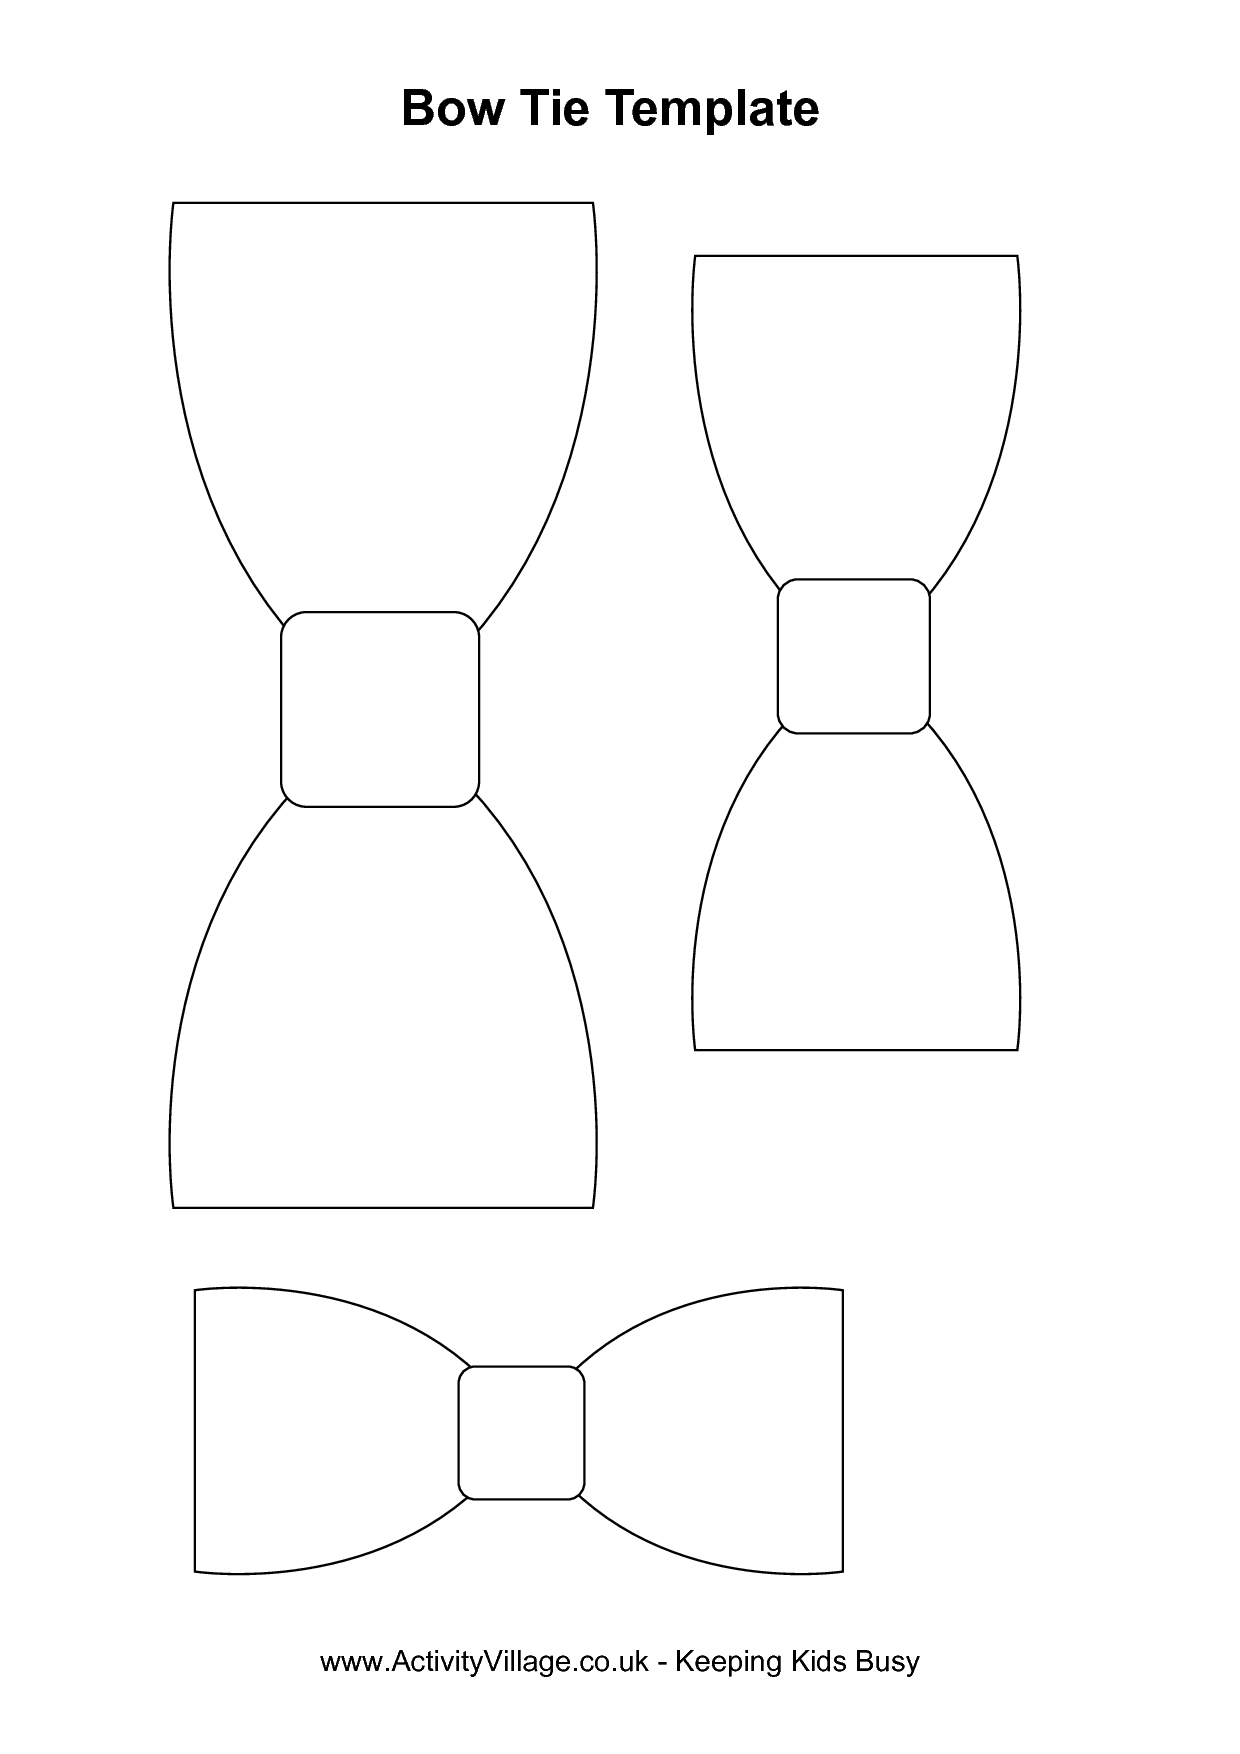 Free Coloring Pages   Mad Scientist Party In 2019   Pinterest   Baby - Free Bow Tie Template Printable